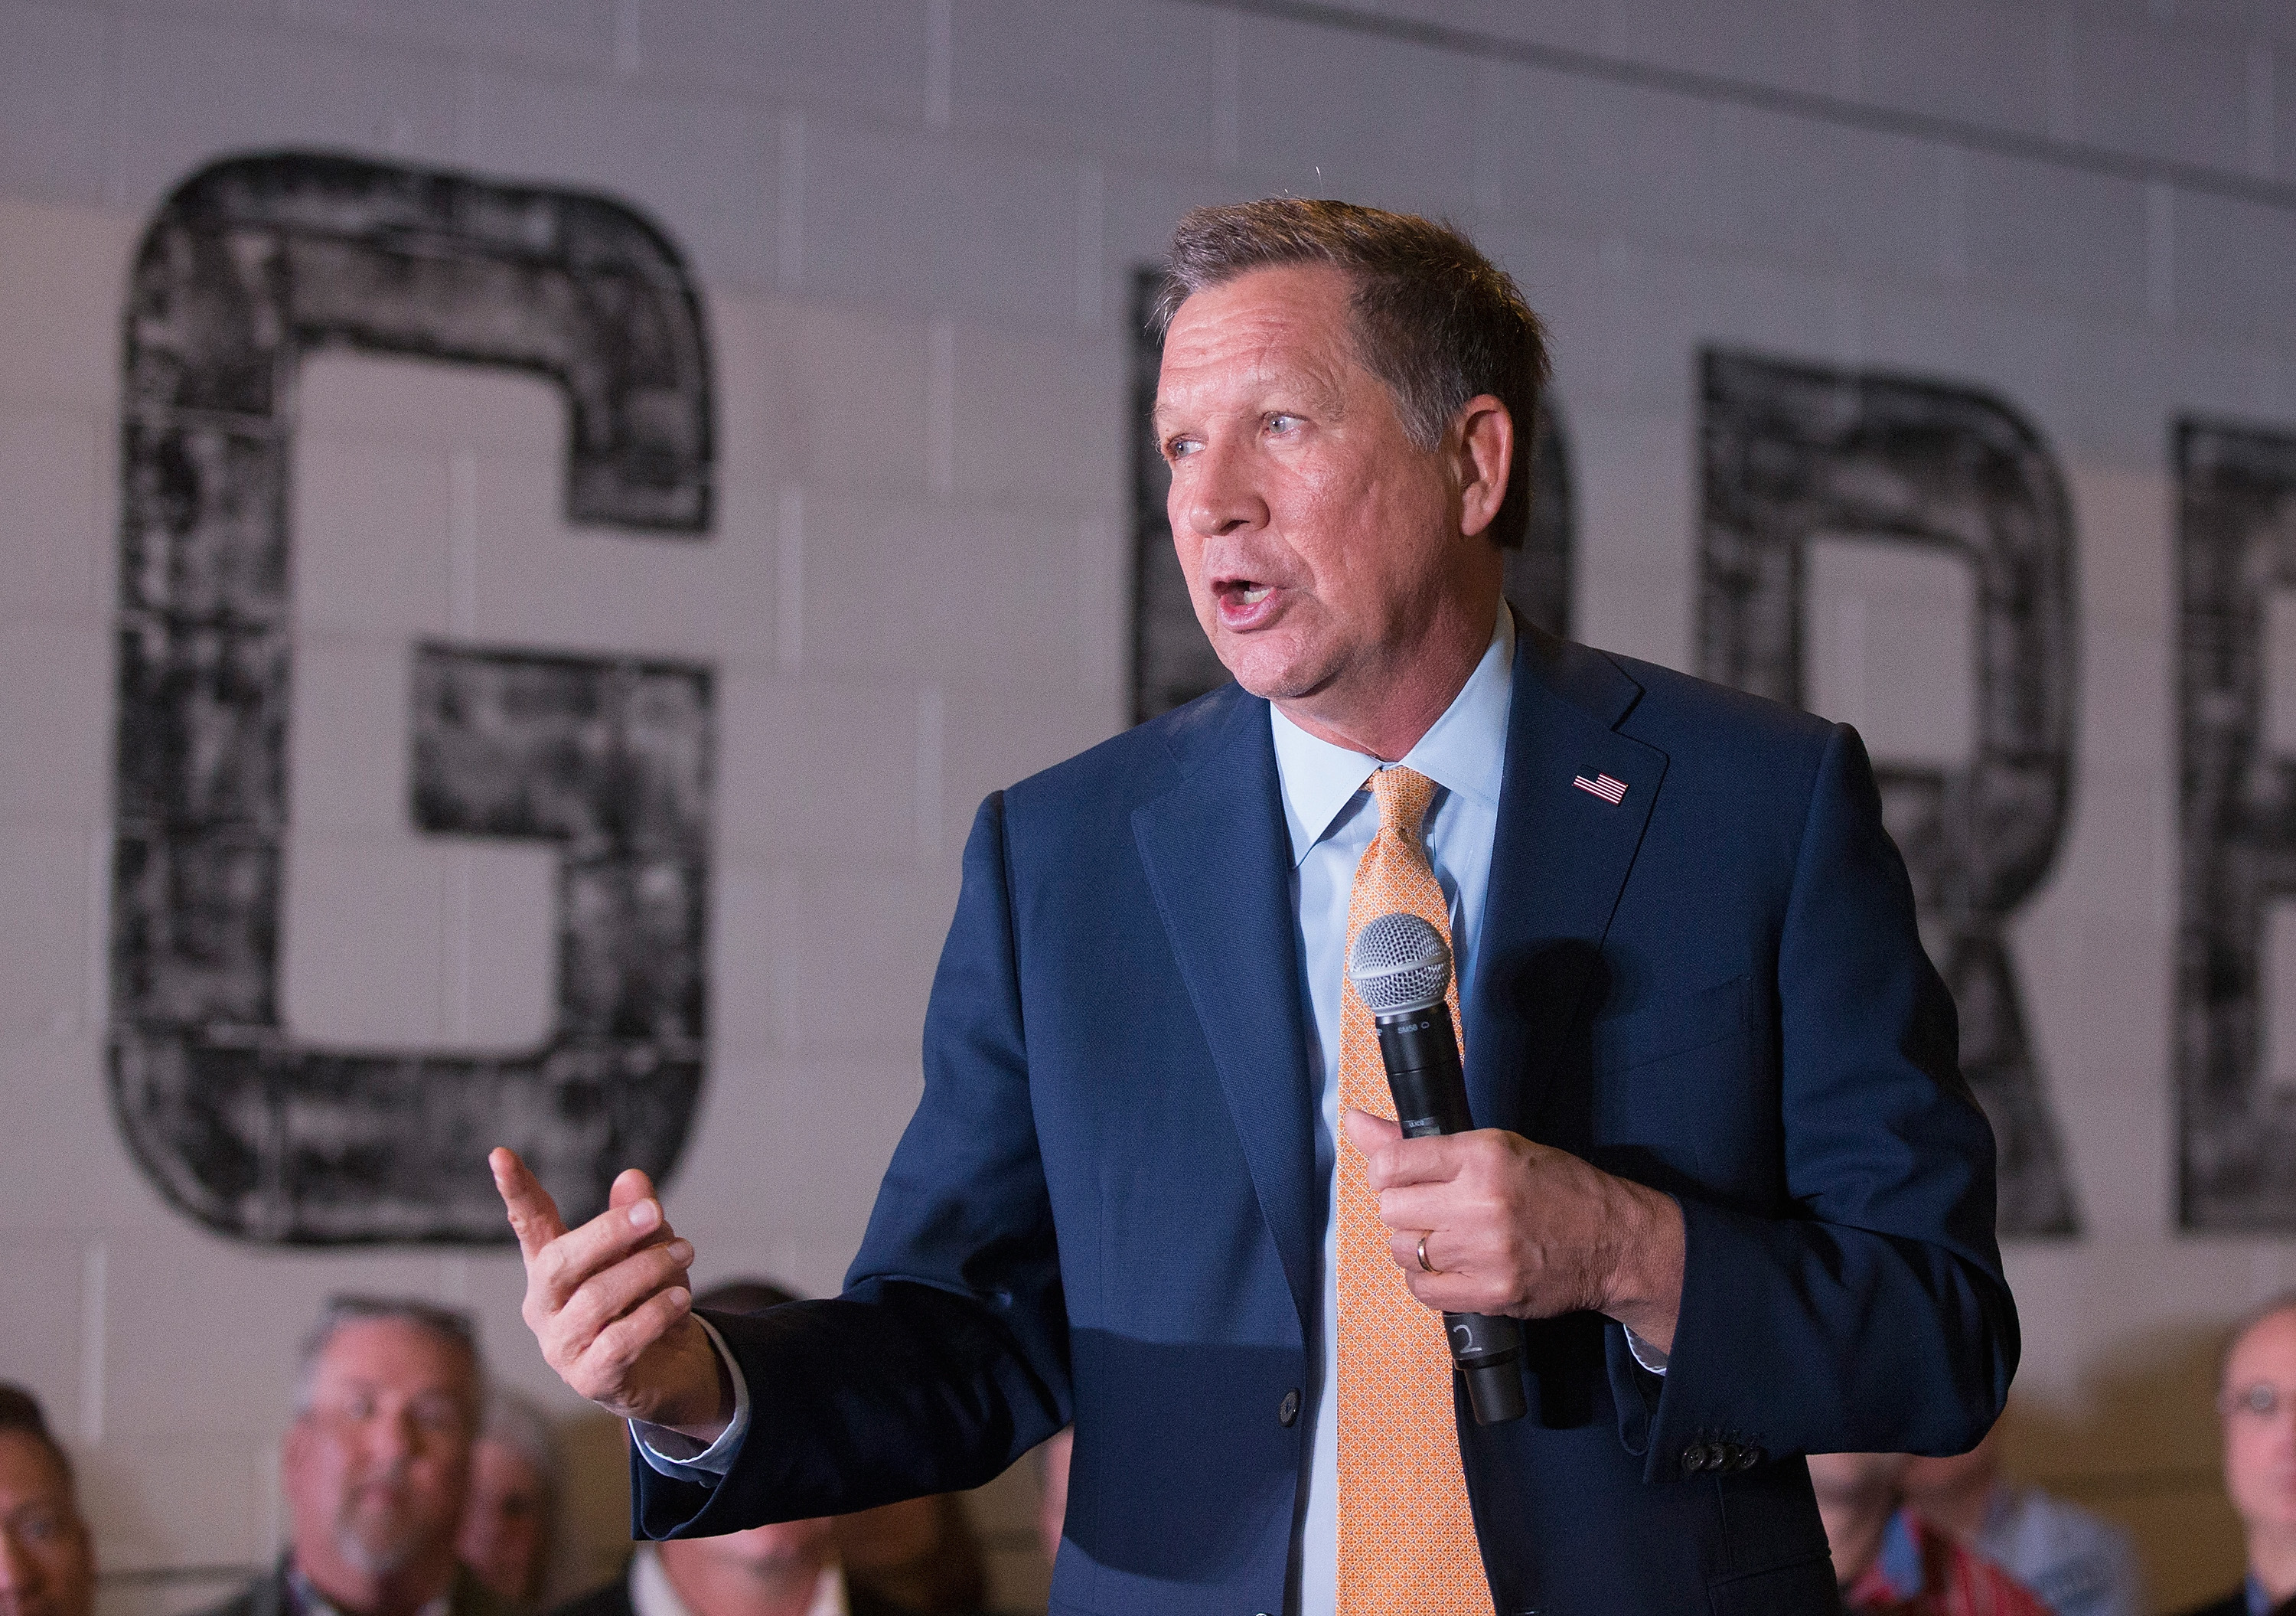 Rubio Asks Ohio to Vote for Kasich, Top Surrogate Refuses